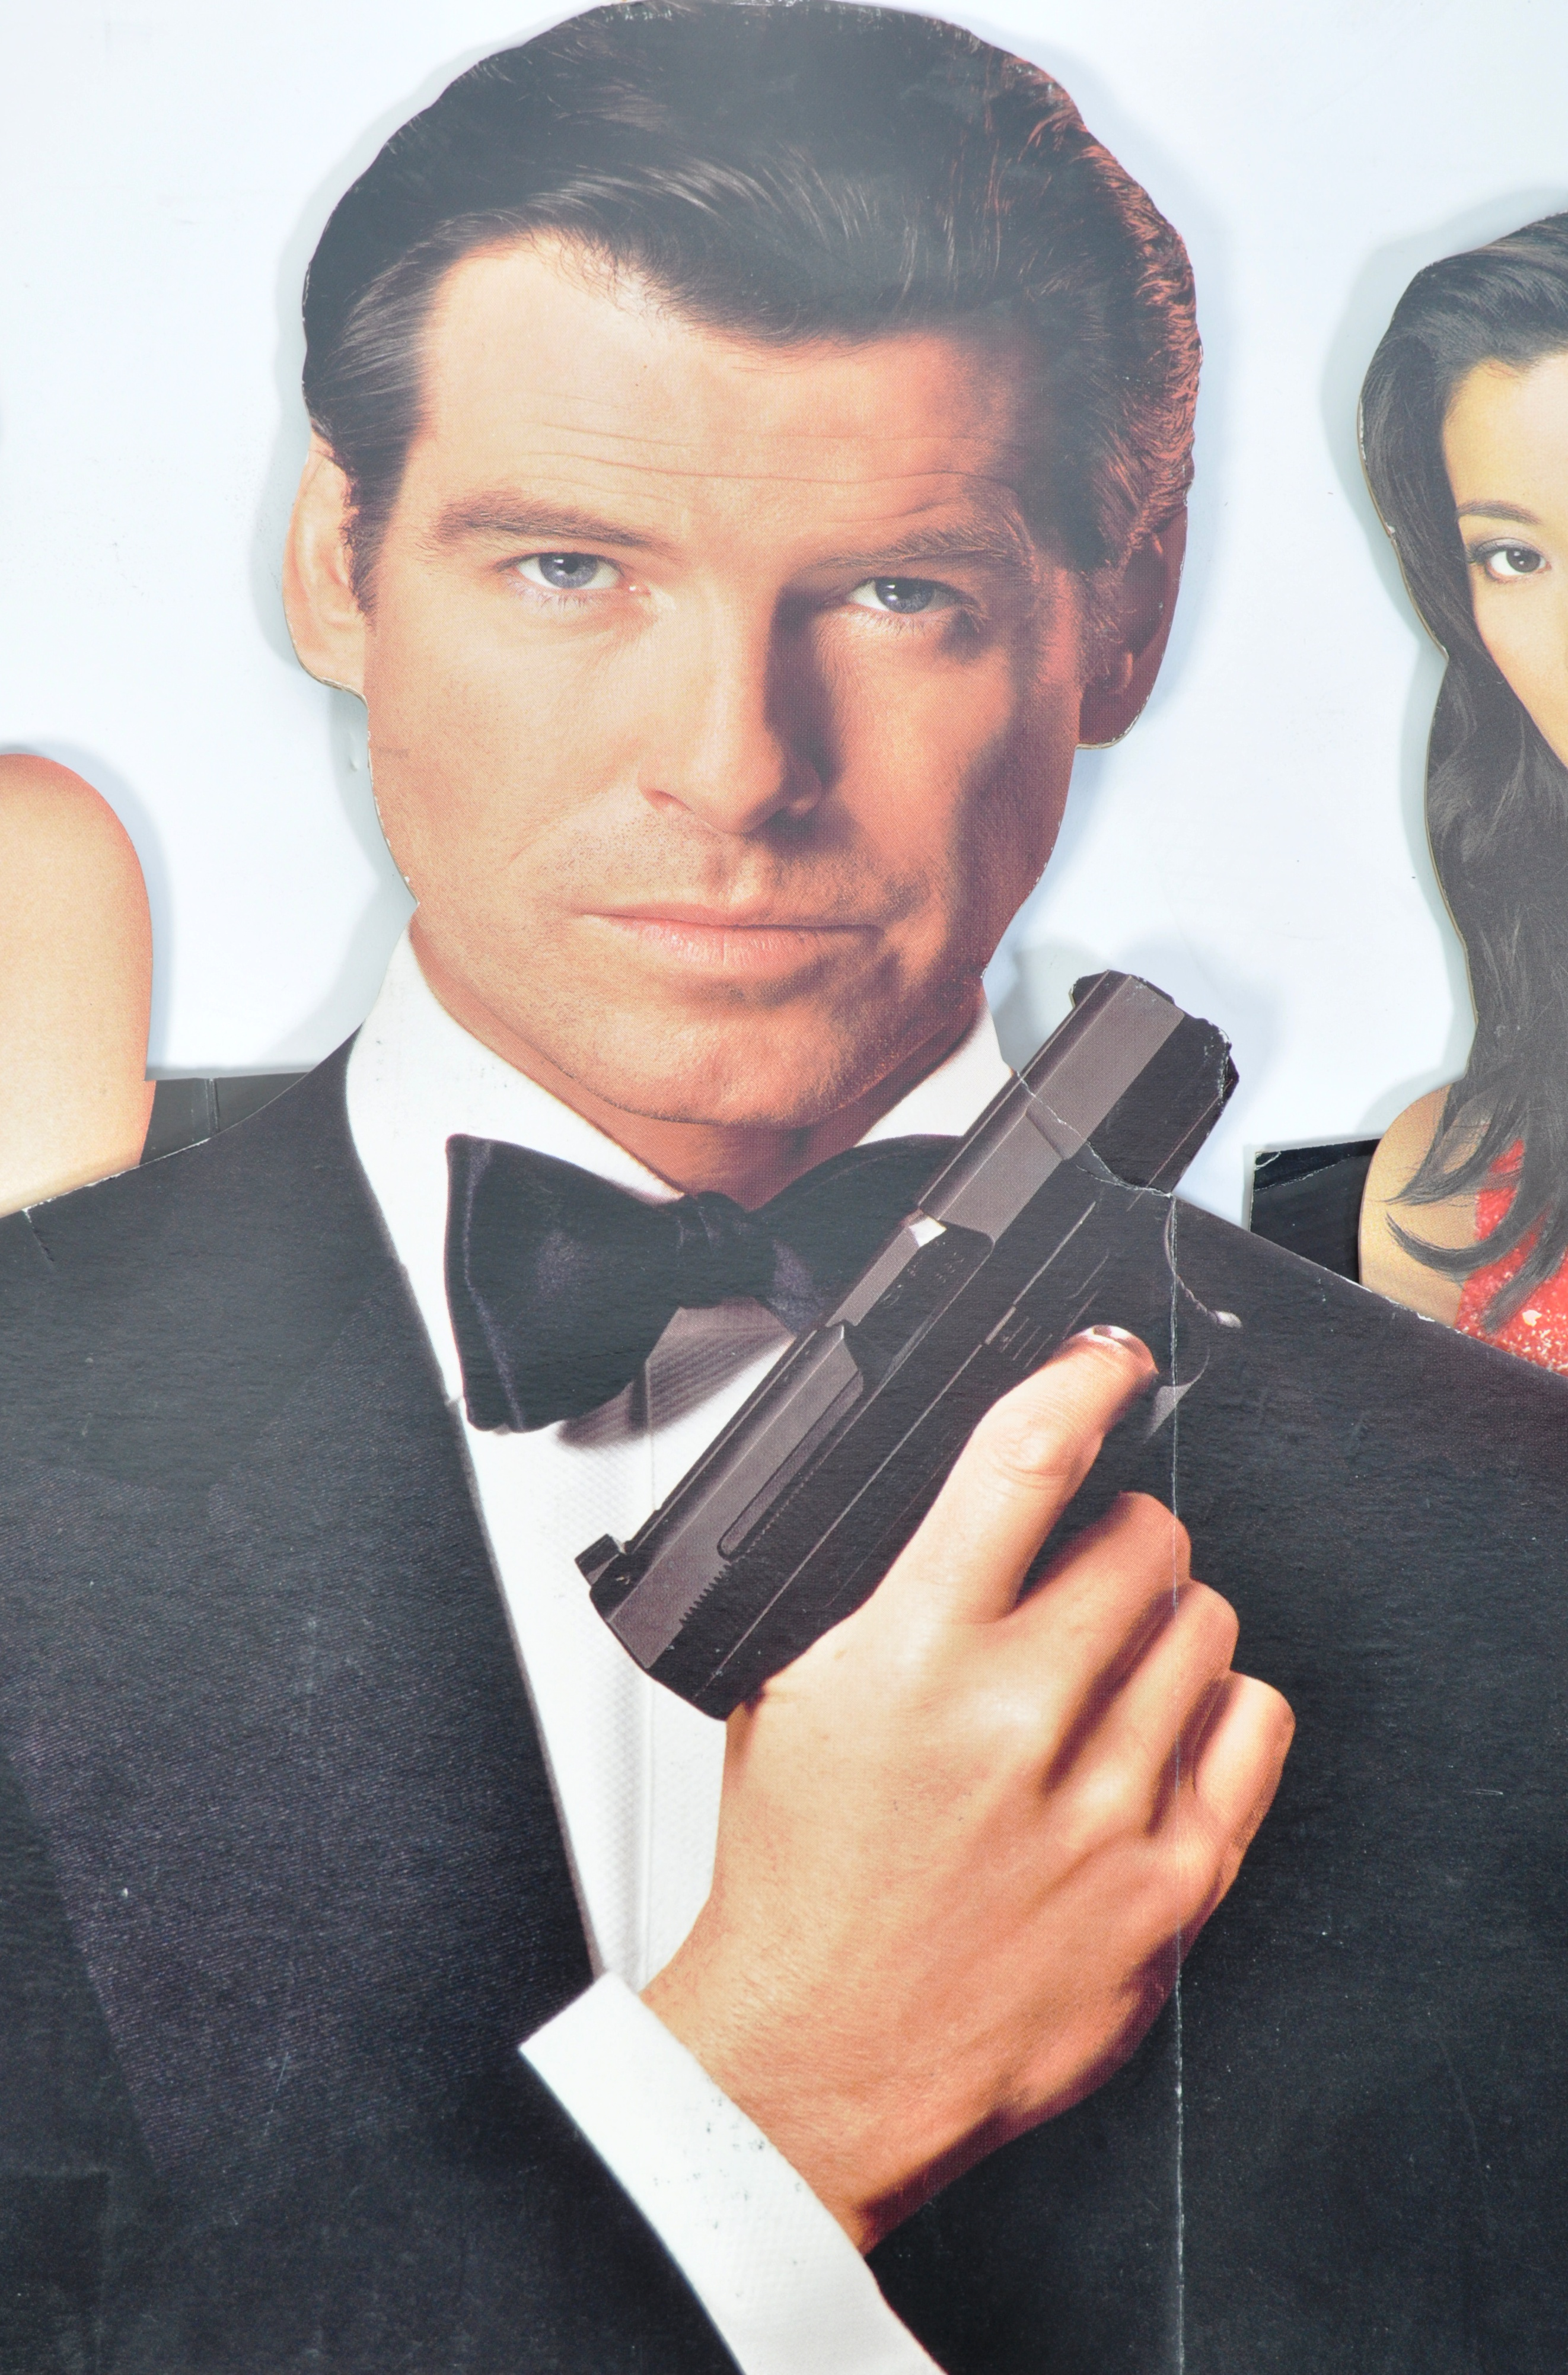 JAMES BOND TOMORROW NEVER DIES CARDBOARD CUT OUT P - Image 2 of 6